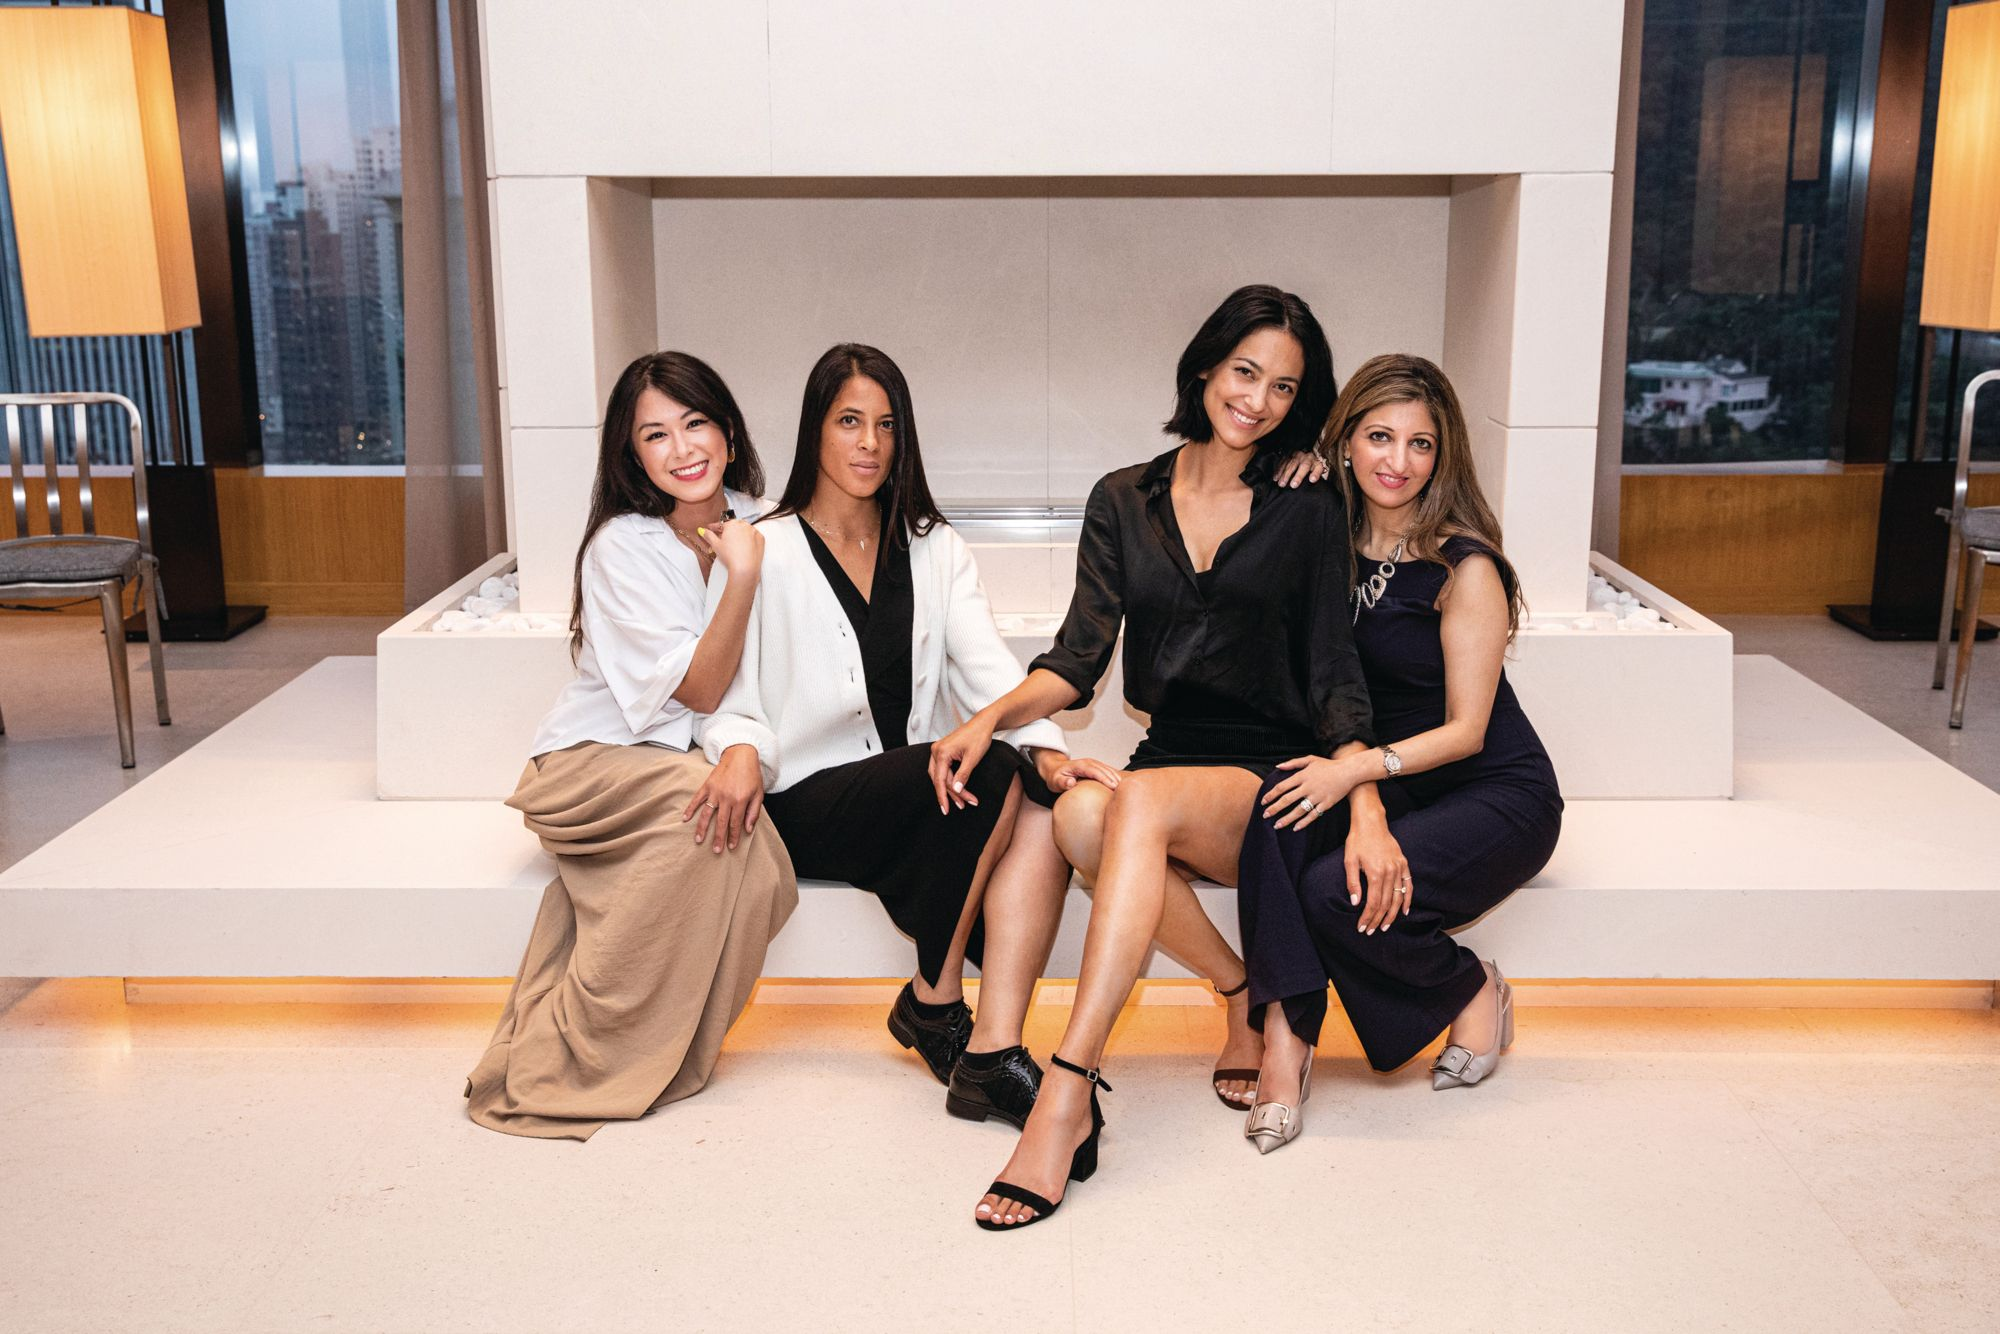 Tatler House Stories: A Panel Discussion With Wellness Advocates Sonia Samtani, Natalie Söderström & Sabrina Villard